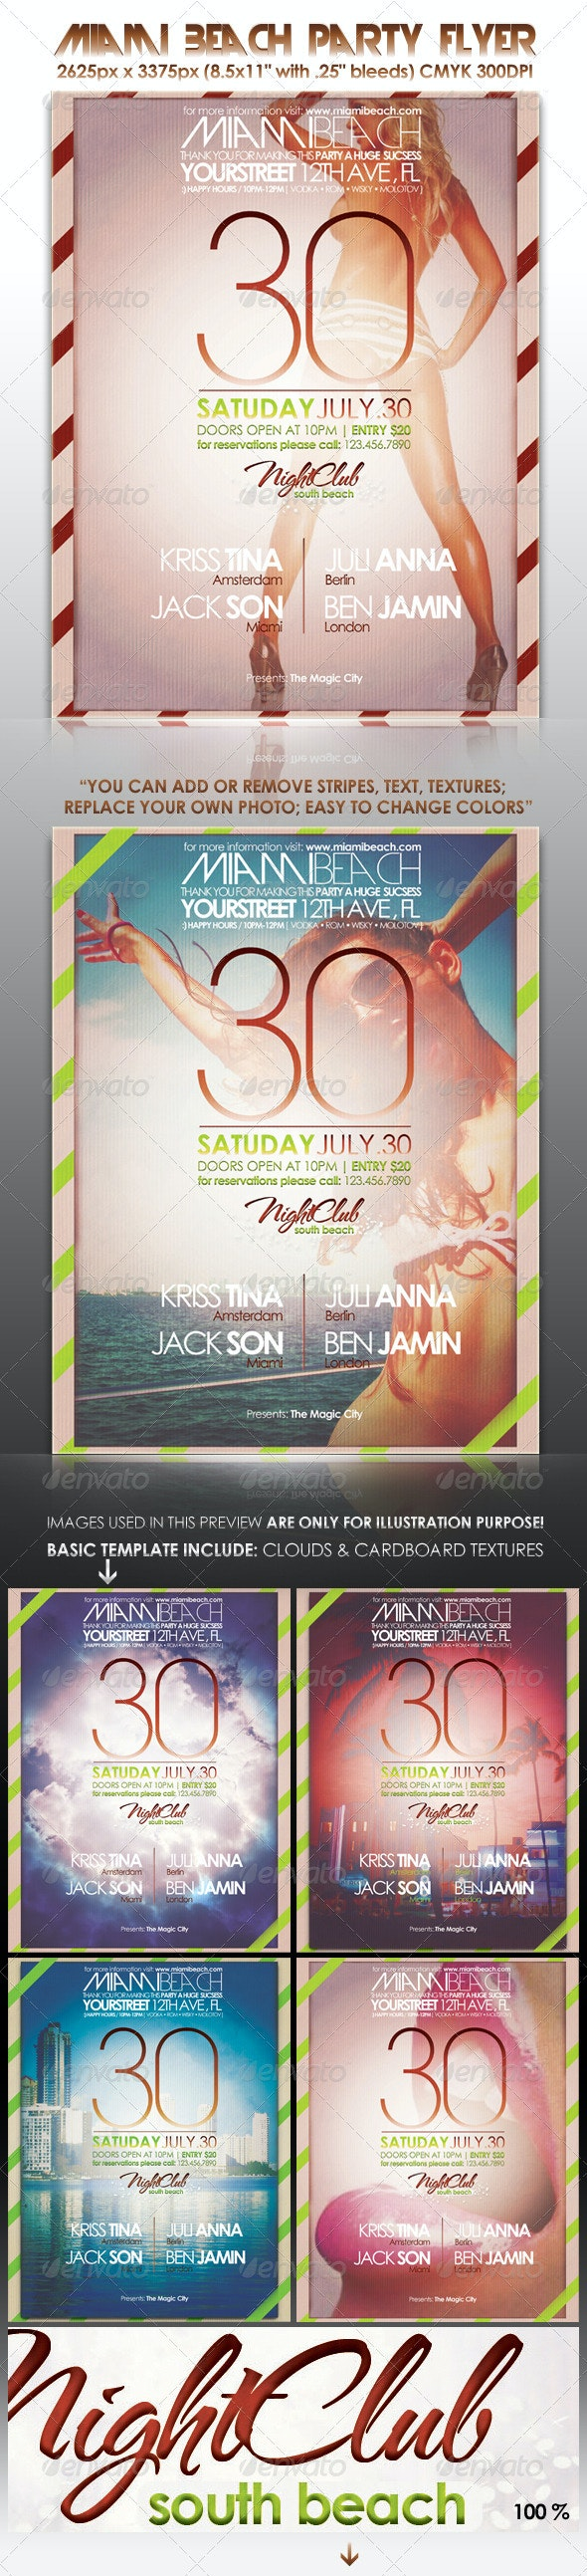 Miami Beach Party Flyer - Clubs & Parties Events